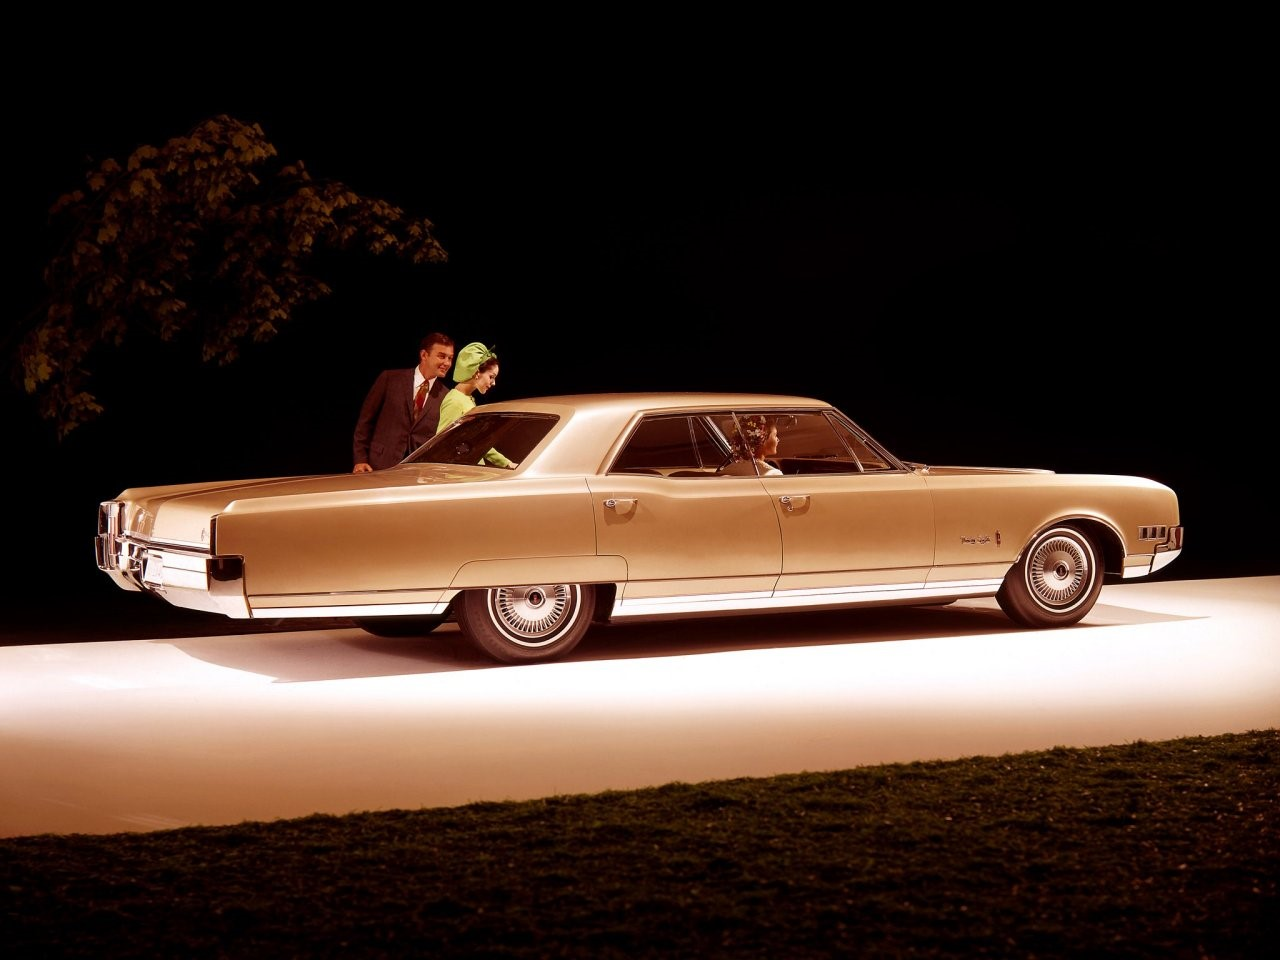 1966 Olds 98 Holiday Sedan